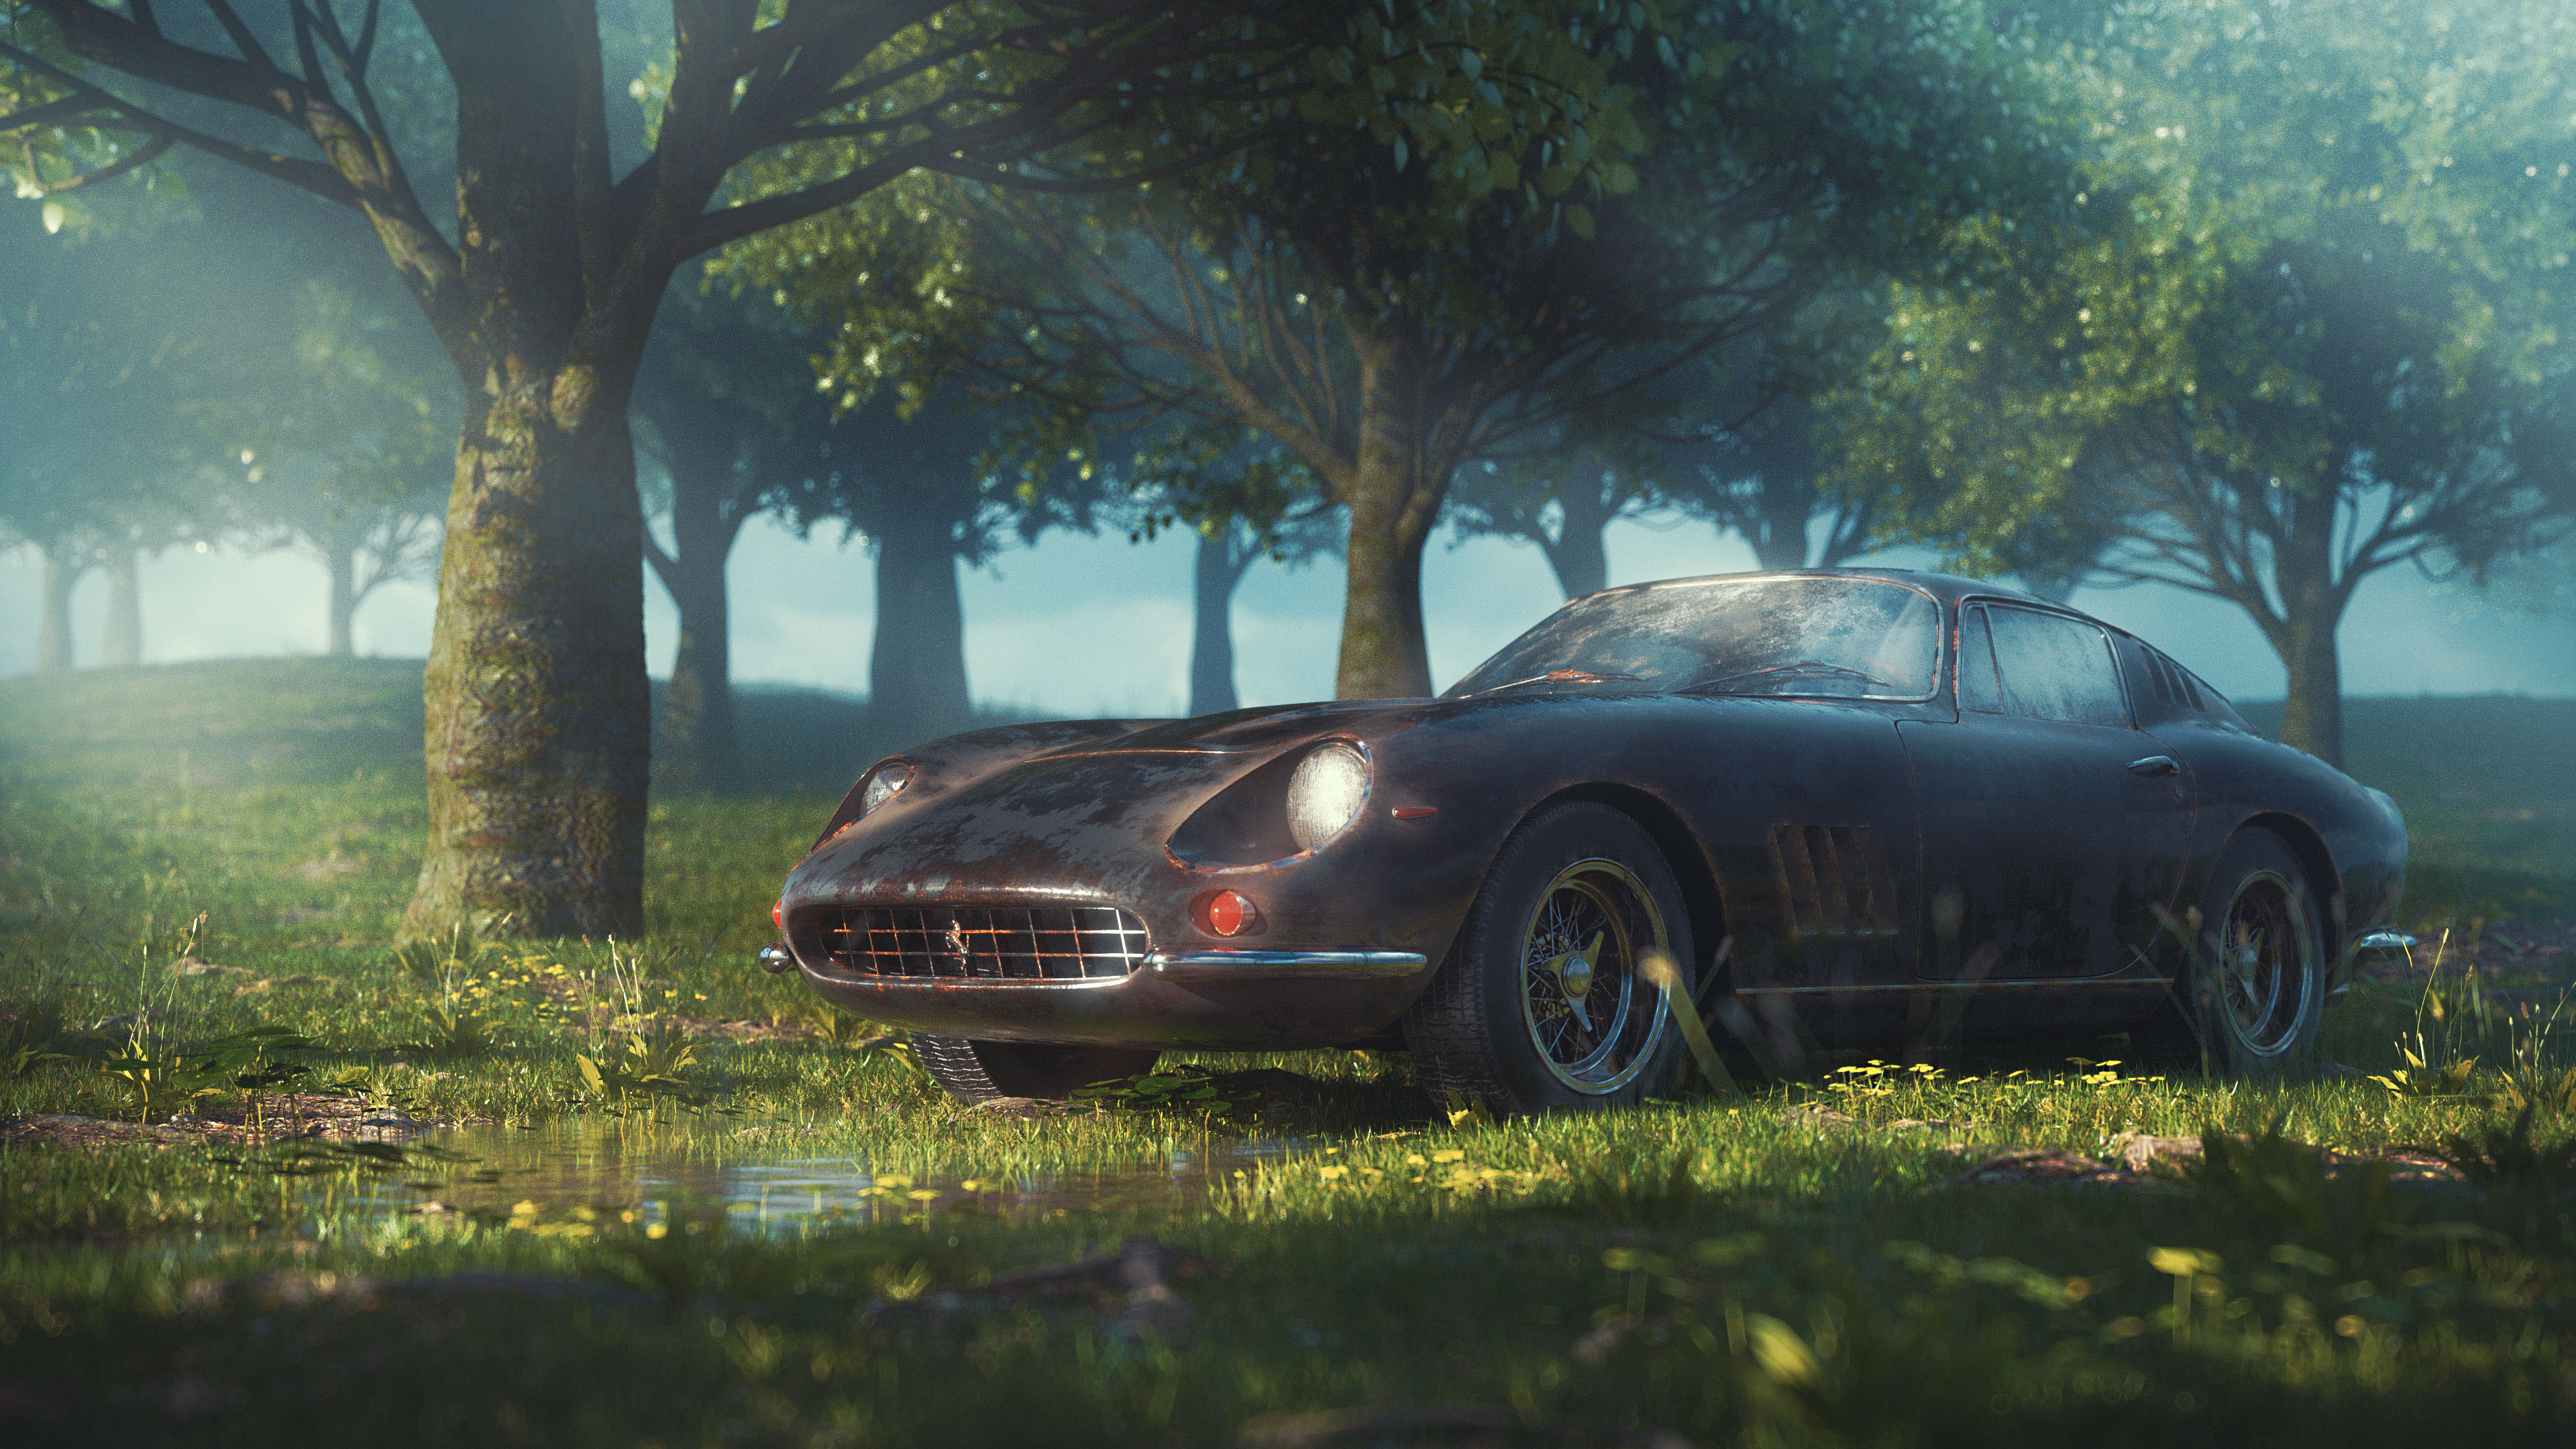 Vintage Ferrari In The Jungle 4k Car In Jungle Background 3840x2160 Wallpaper Teahub Io